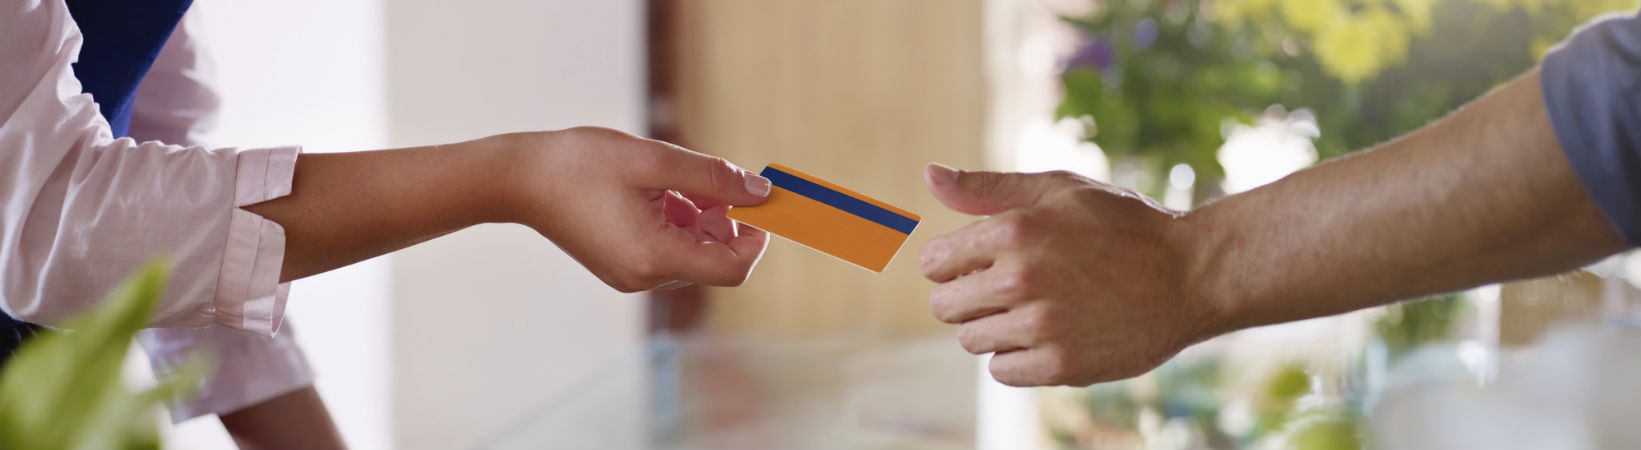 Small Business Credit Card Fees Take a Toll on Profits | Merchant ...